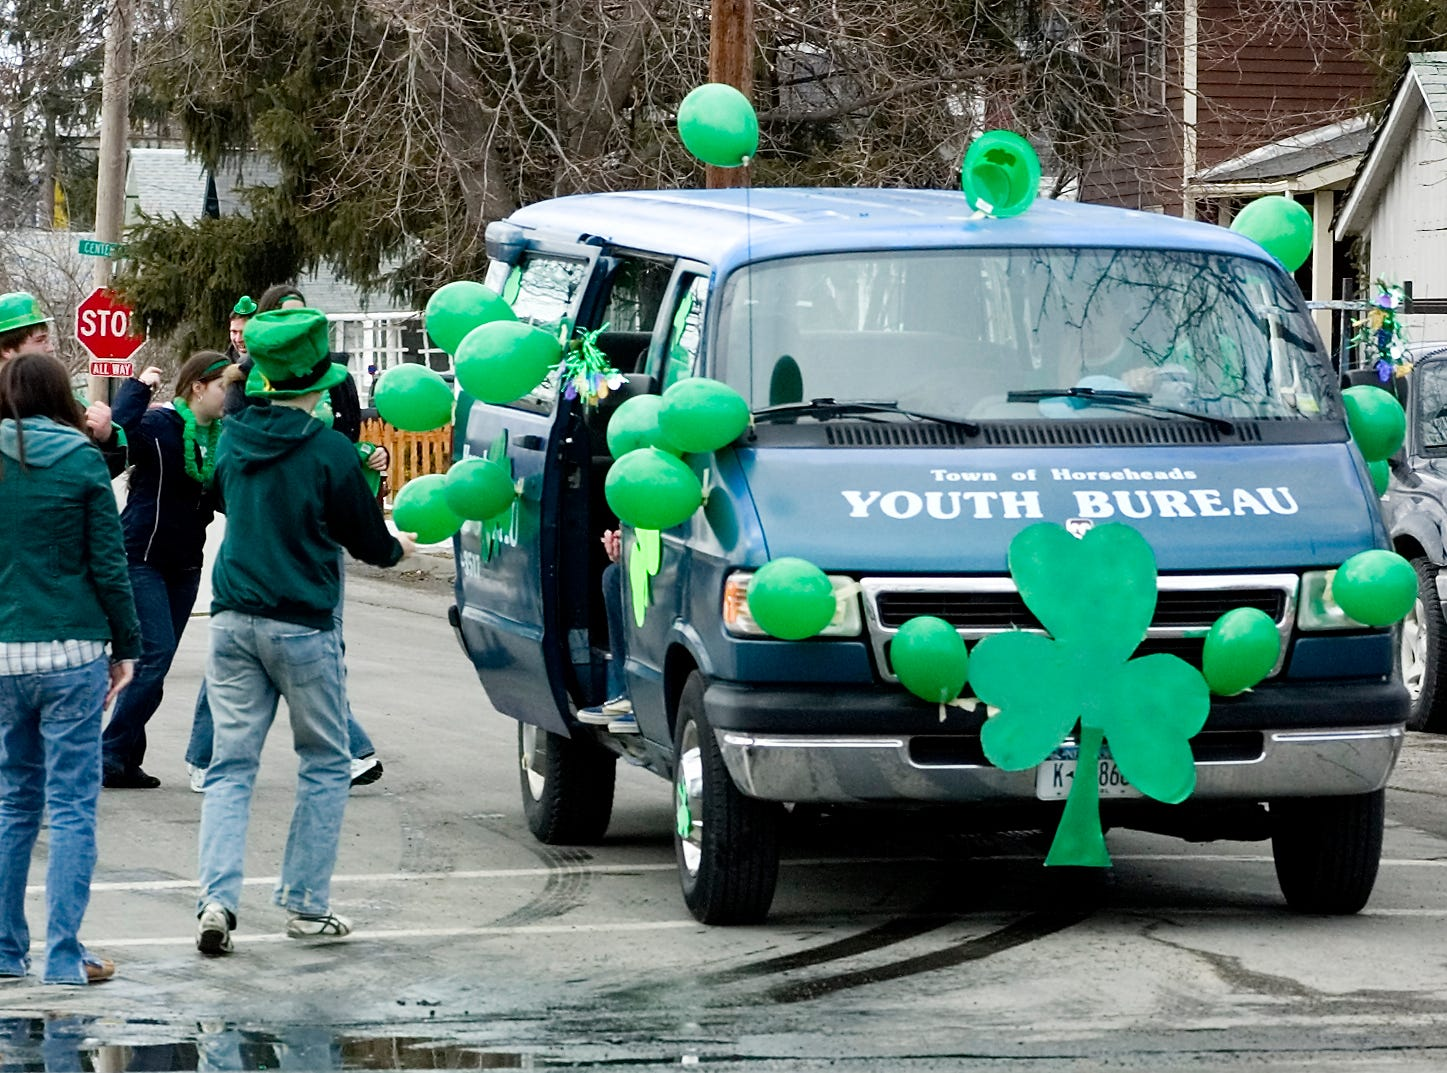 2007: Members of the Horseheads Youth Bureau prepare to climb in a youth bureau van decorated for Sunday's St. Patrick's Day parade in Horseheads.